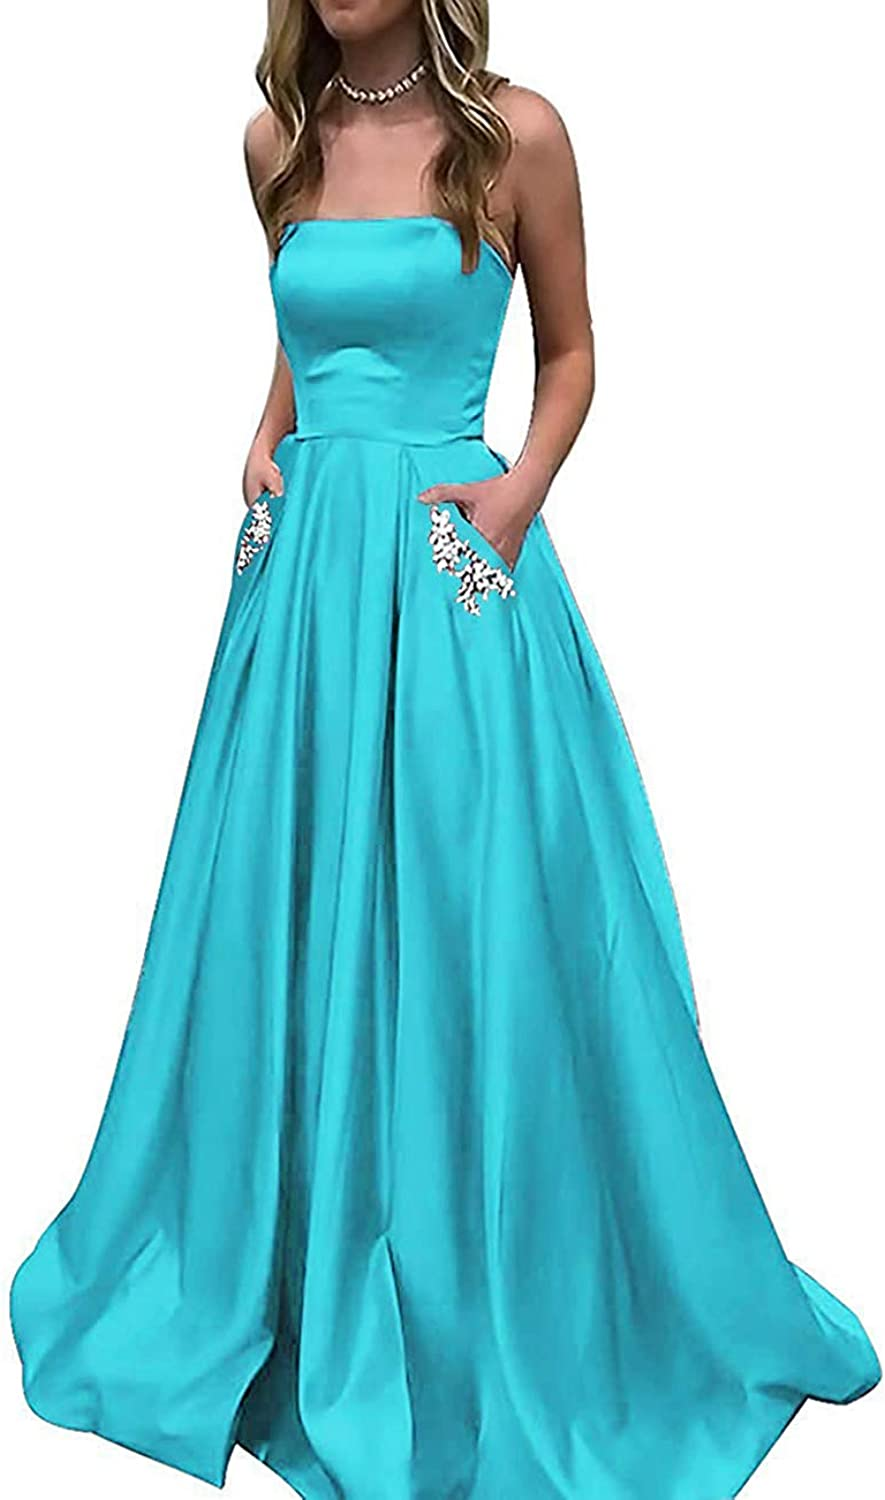 PrettyTatum Women's A Line Satin Prom Dresses Long Evening Ball Gowns with Beaded Pockets